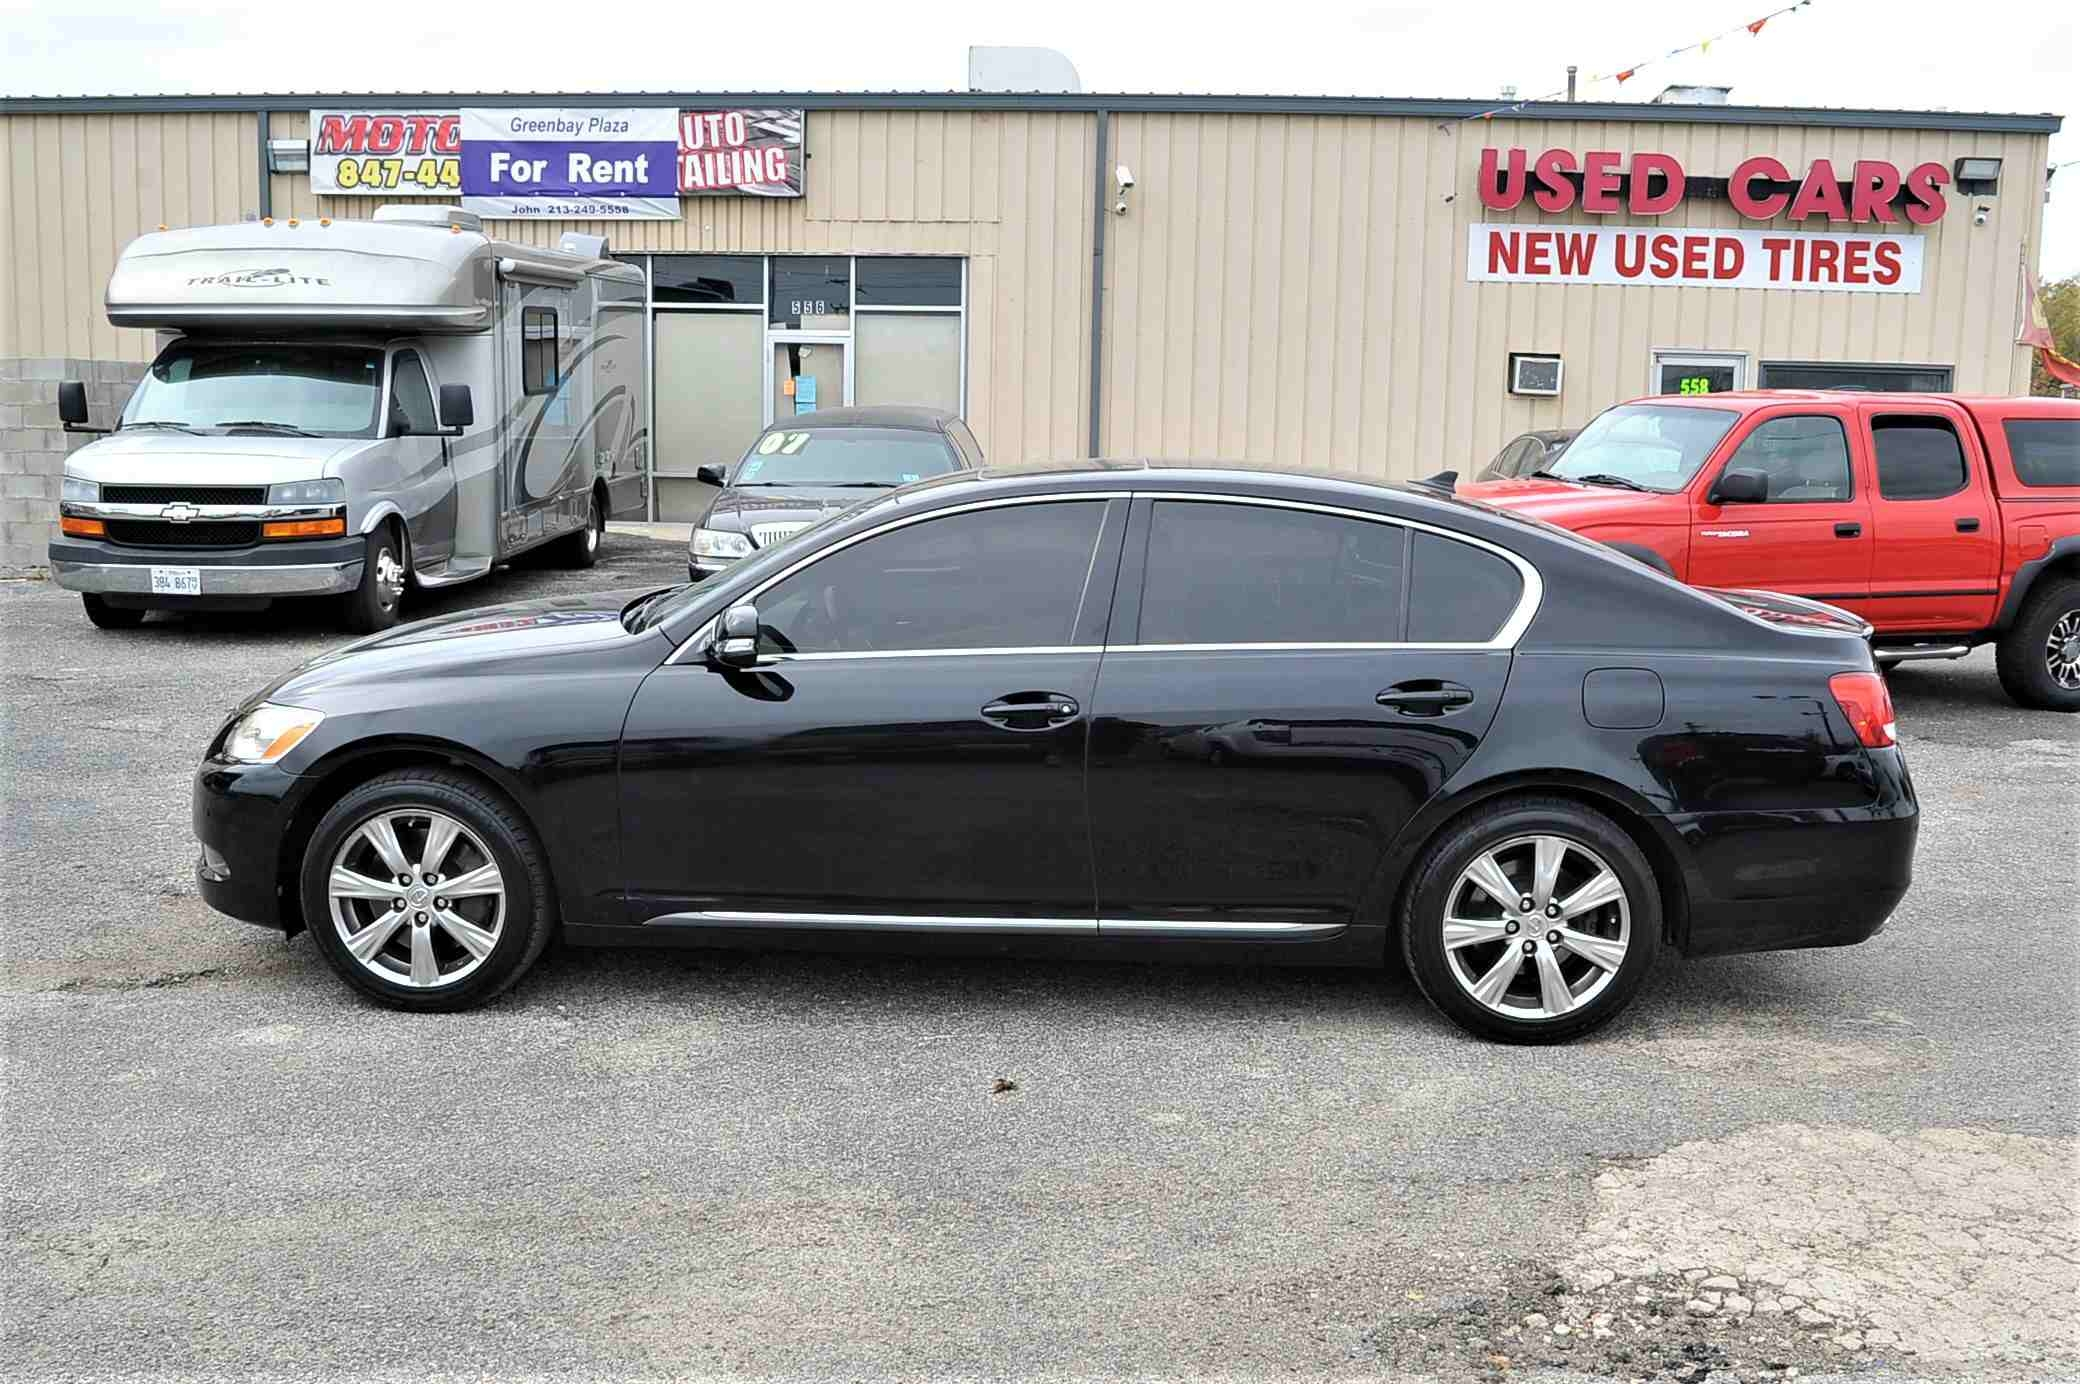 2008 Lexus GS350 Navigation Black AWD Sedan Sale Bannockburn Barrington Beach Park